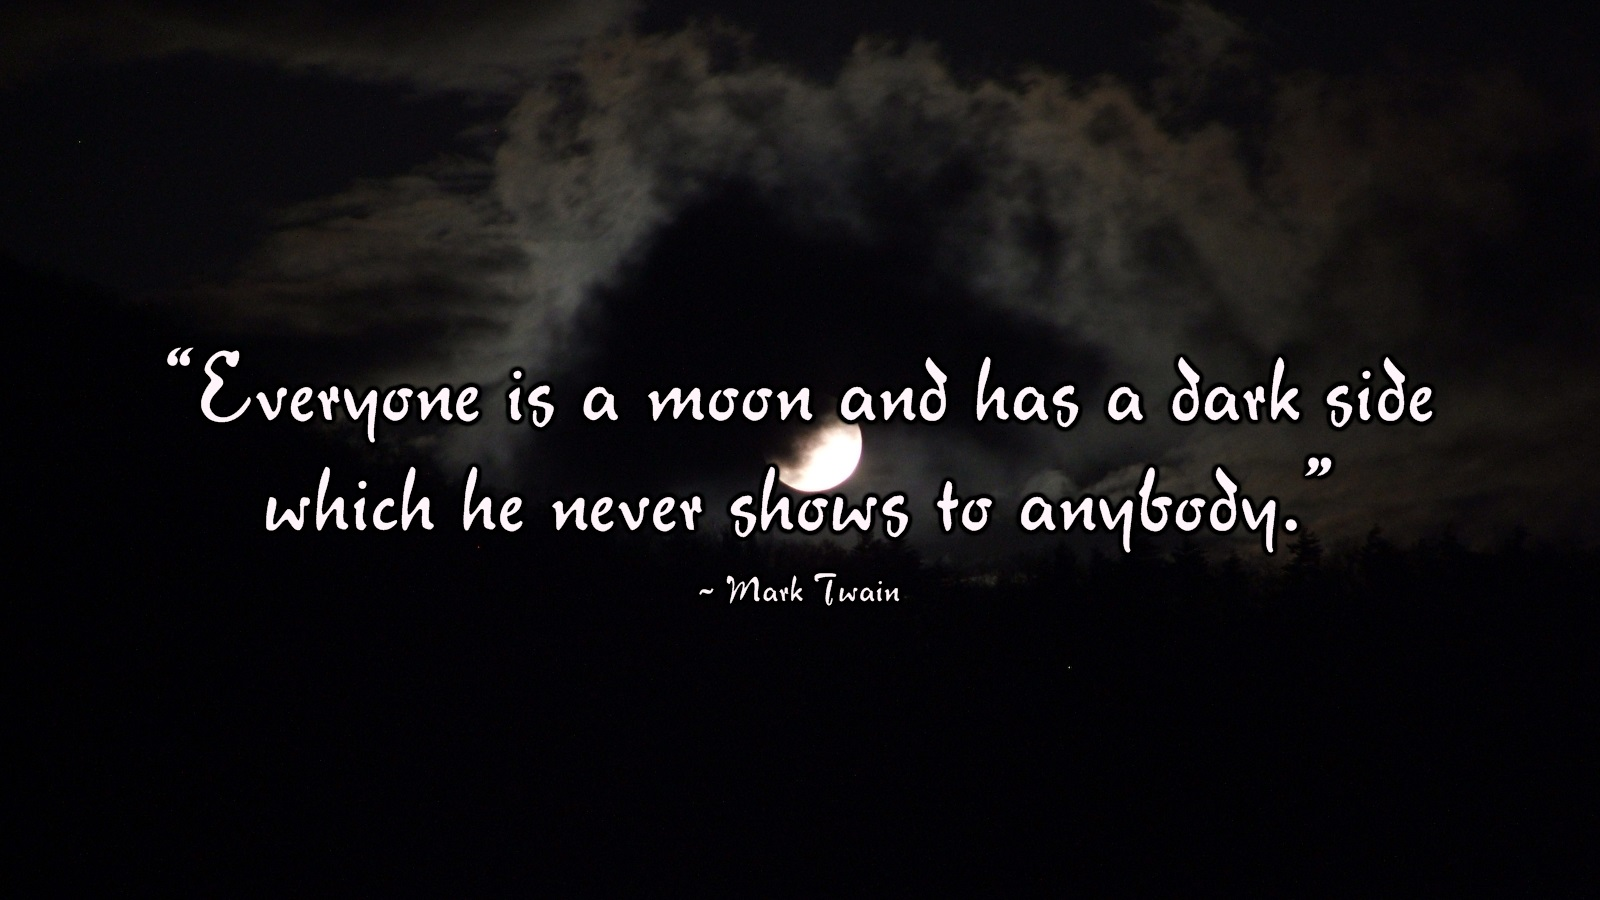 Book Quote Wallpaper Edgar Allan Poe Everyone Is A Moon And Has A Dark Sight Which He Never